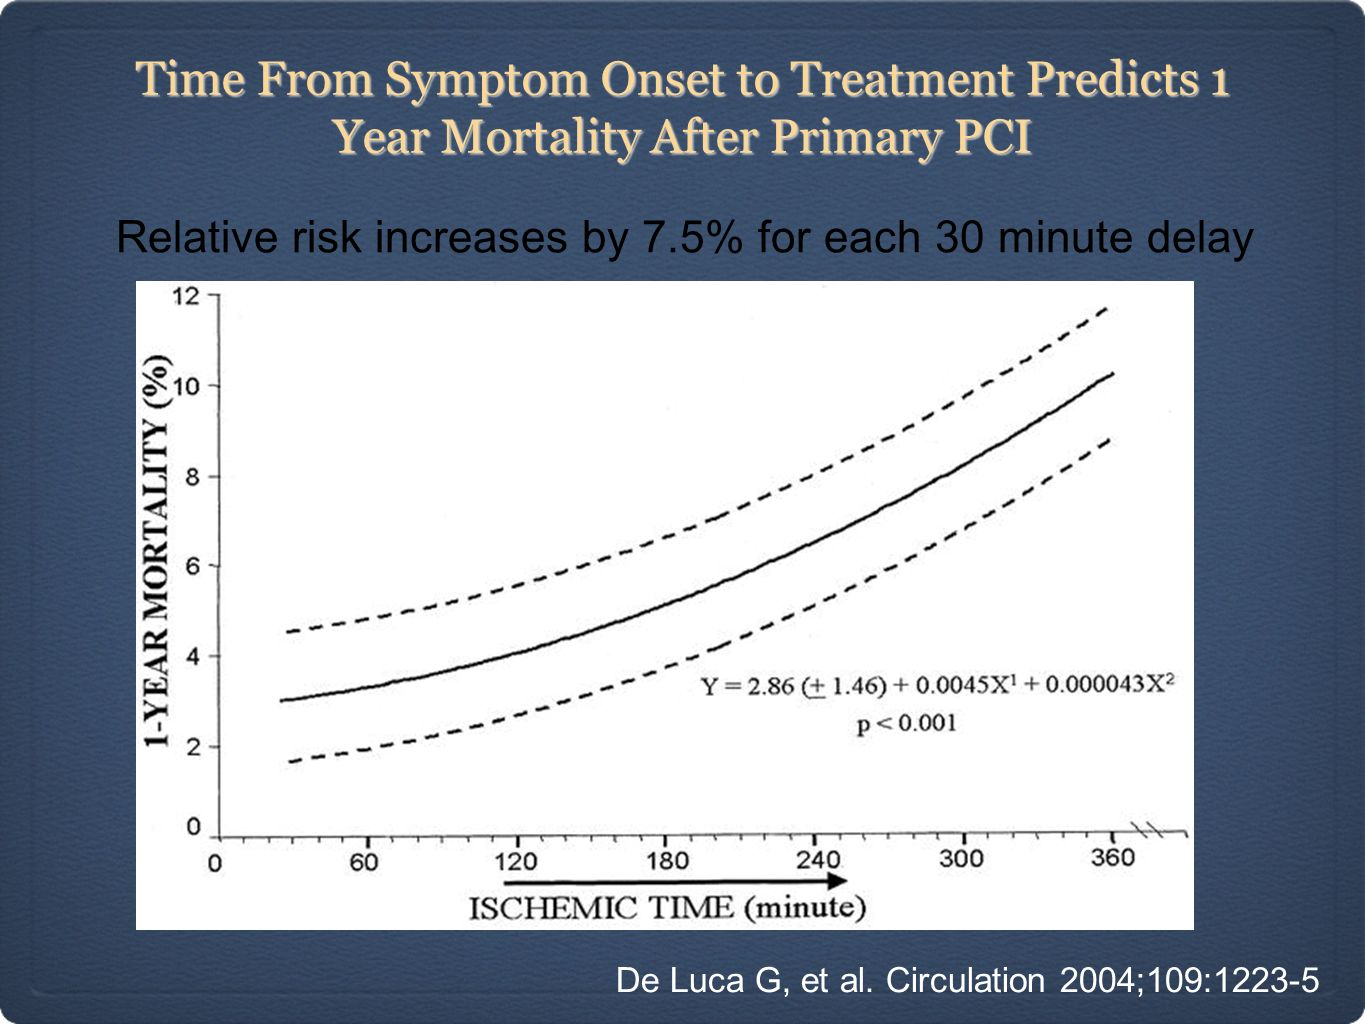 Time From Symptom Onset to Treatment Predicts 1 Year Mortality After Primary PCI